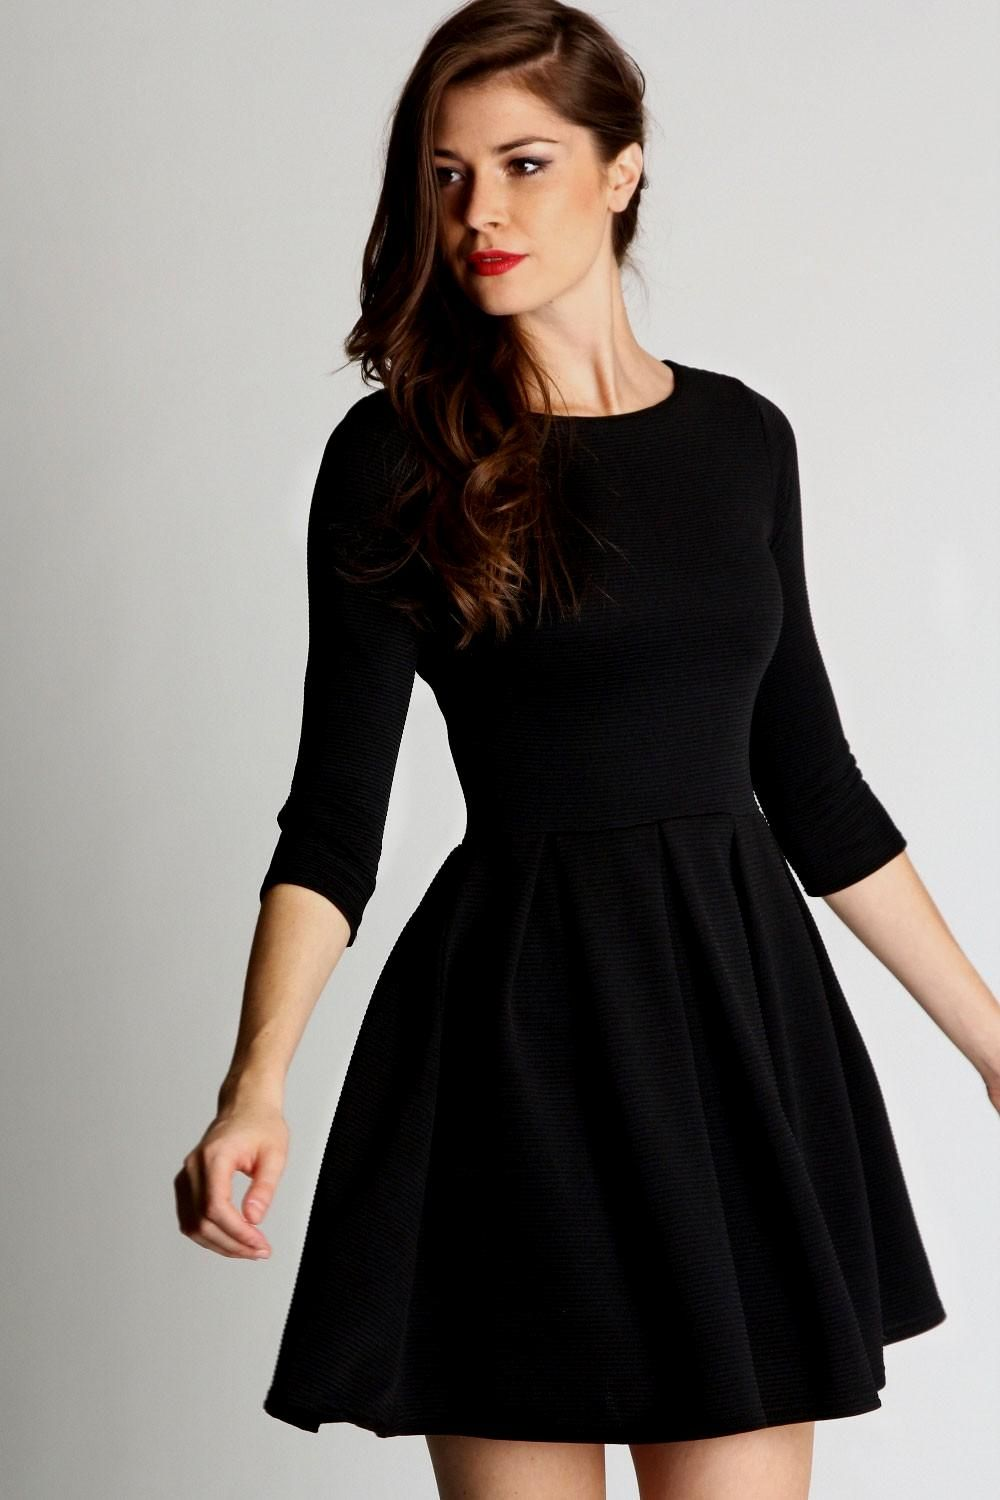 Black dress skater - Skater Dresses Fit And Flare White Black Long Sleeved Lace